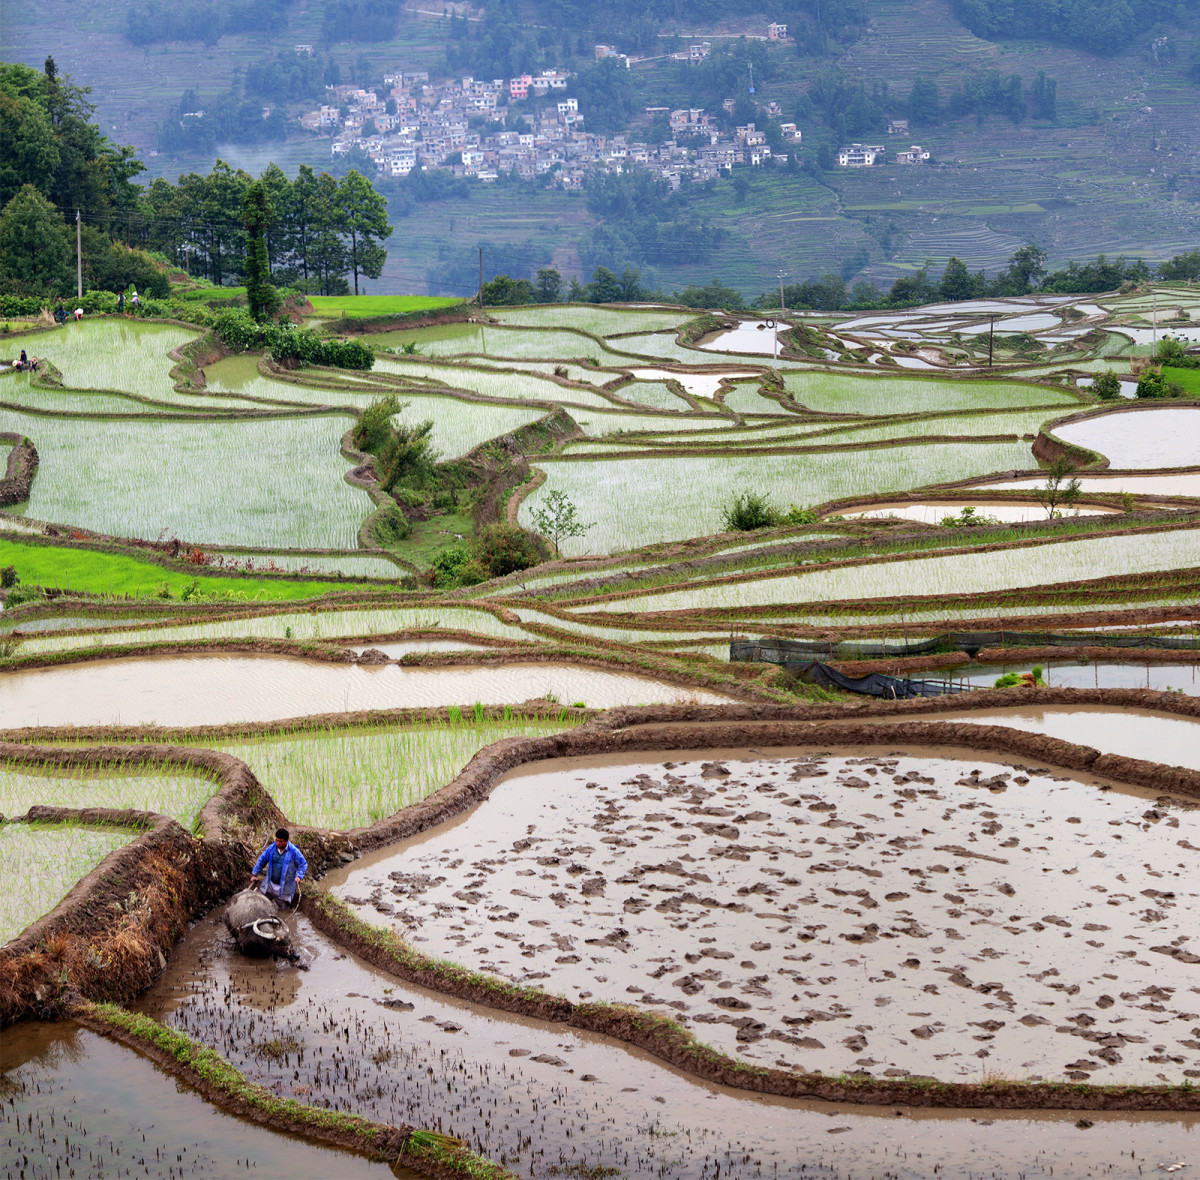 The Oryza sativa species of rice was domesticated in a single region in China about 10,000 years ago, and it was from there that it spread to the different parts of the world.